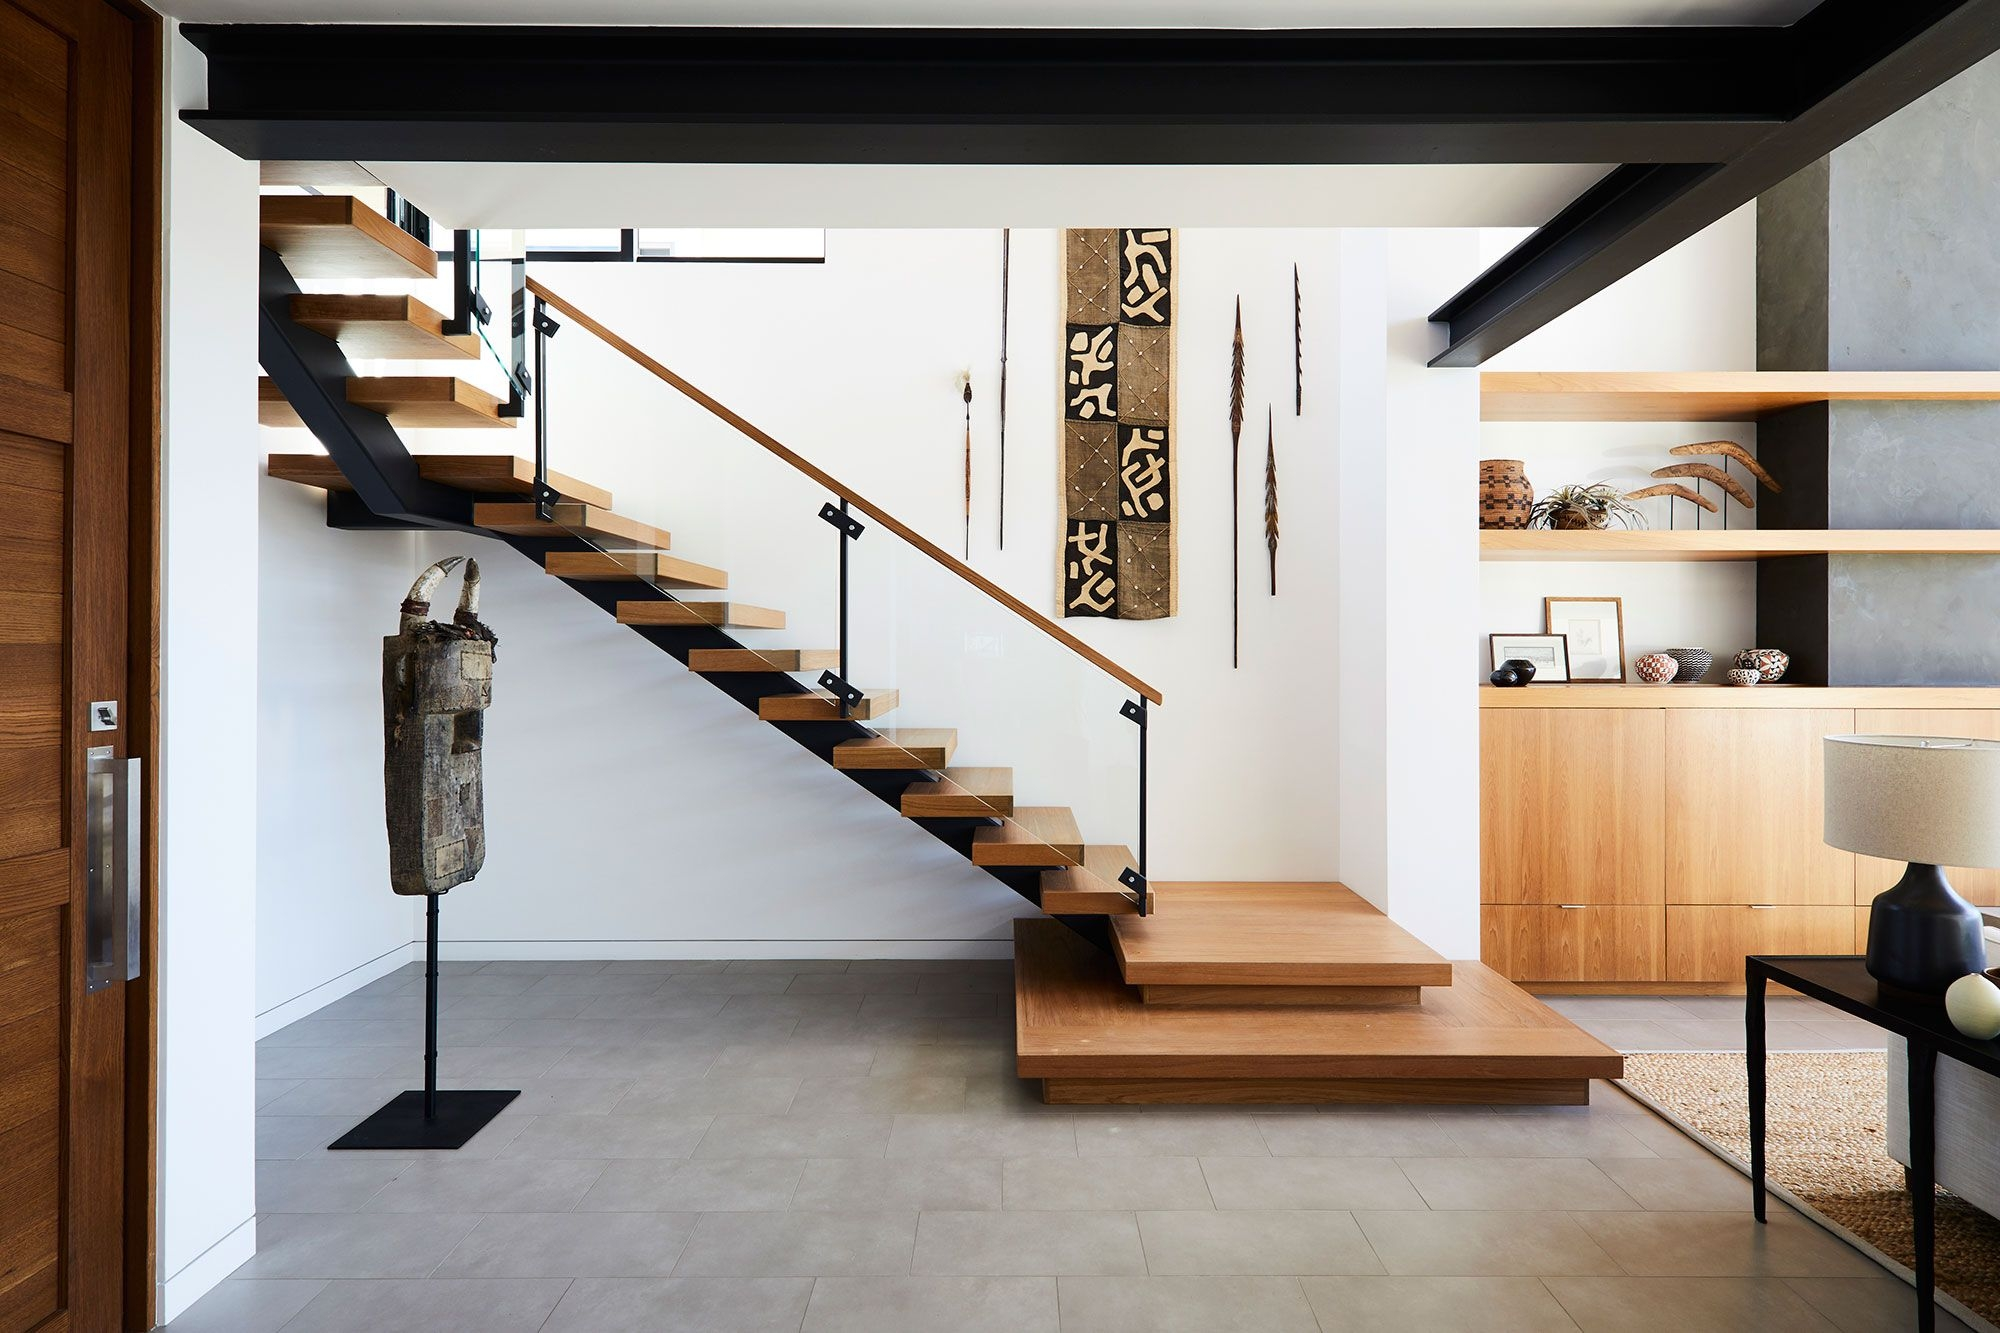 55 Best Staircase Ideas Top Ways To Decorate A Stairway | Stairs Wall Paint Design | Designer | Fancy | Beautiful | Staircase Railing Wood | Wall Colour